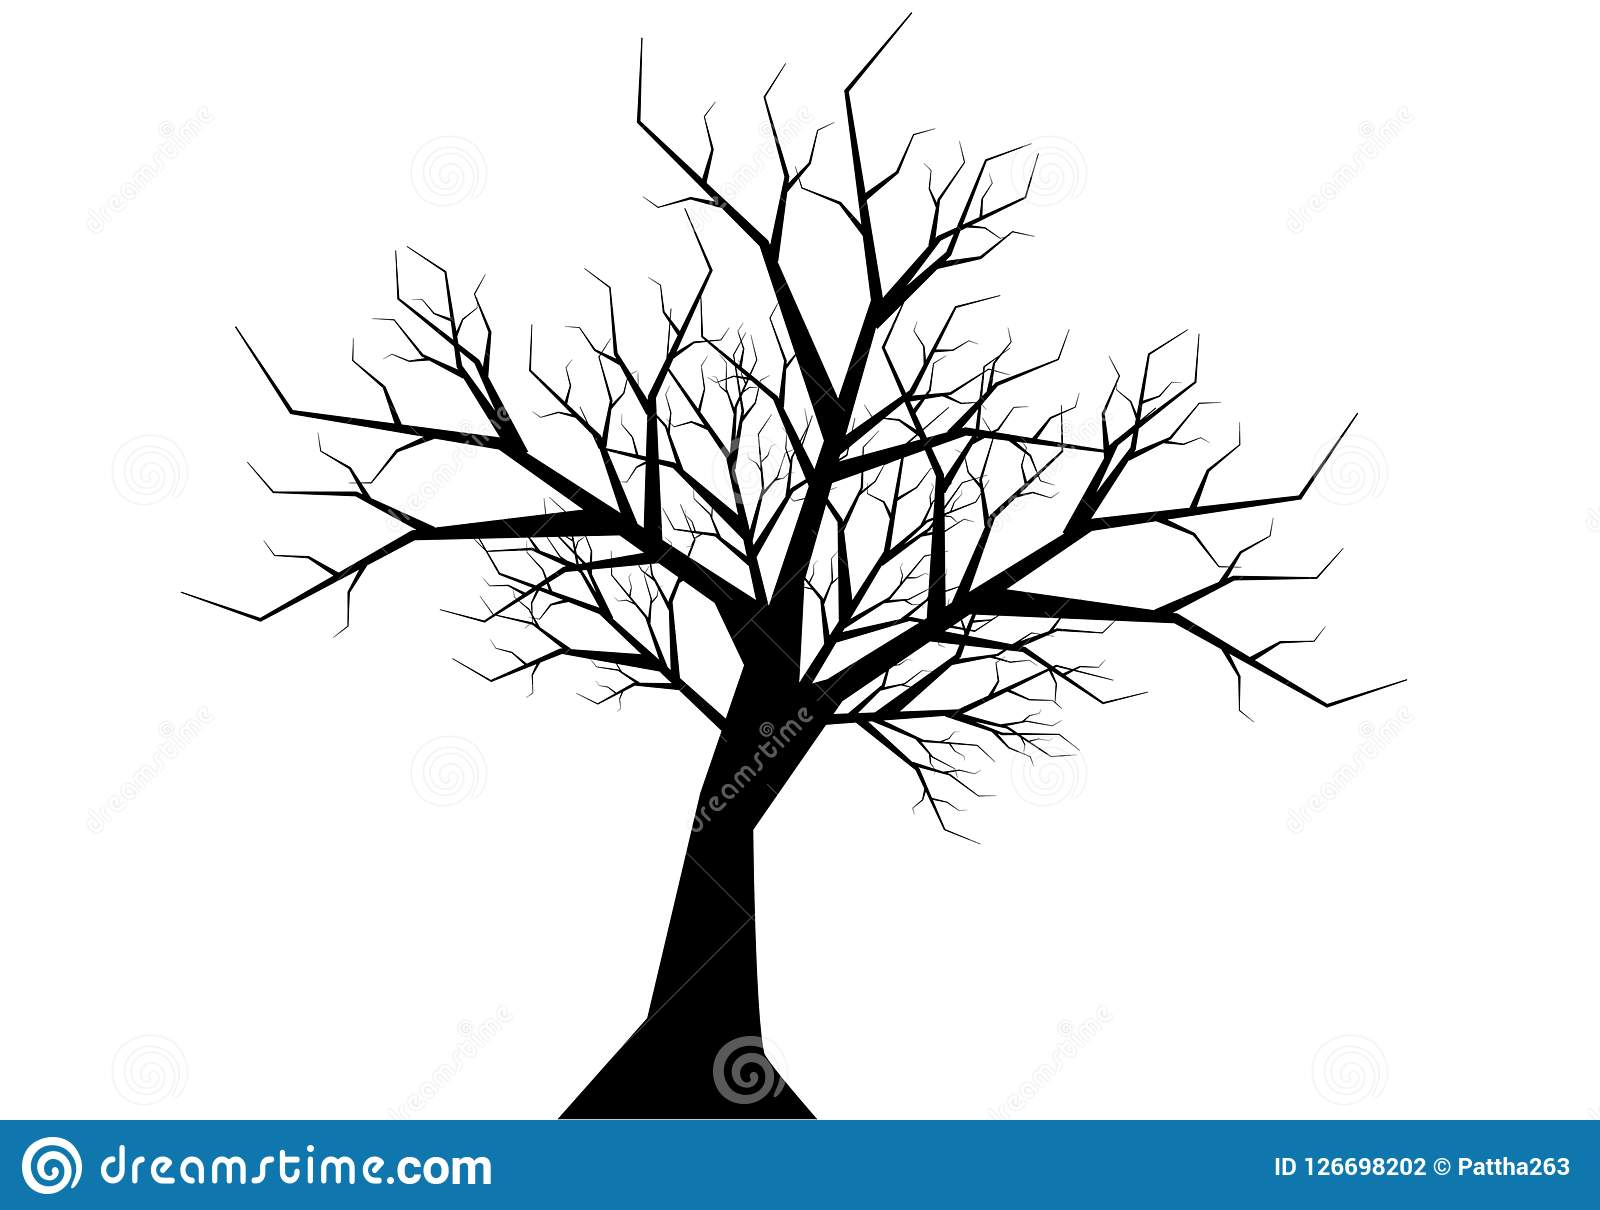 Dry Twig Tree Silhouette Black On White Background Vector Stock